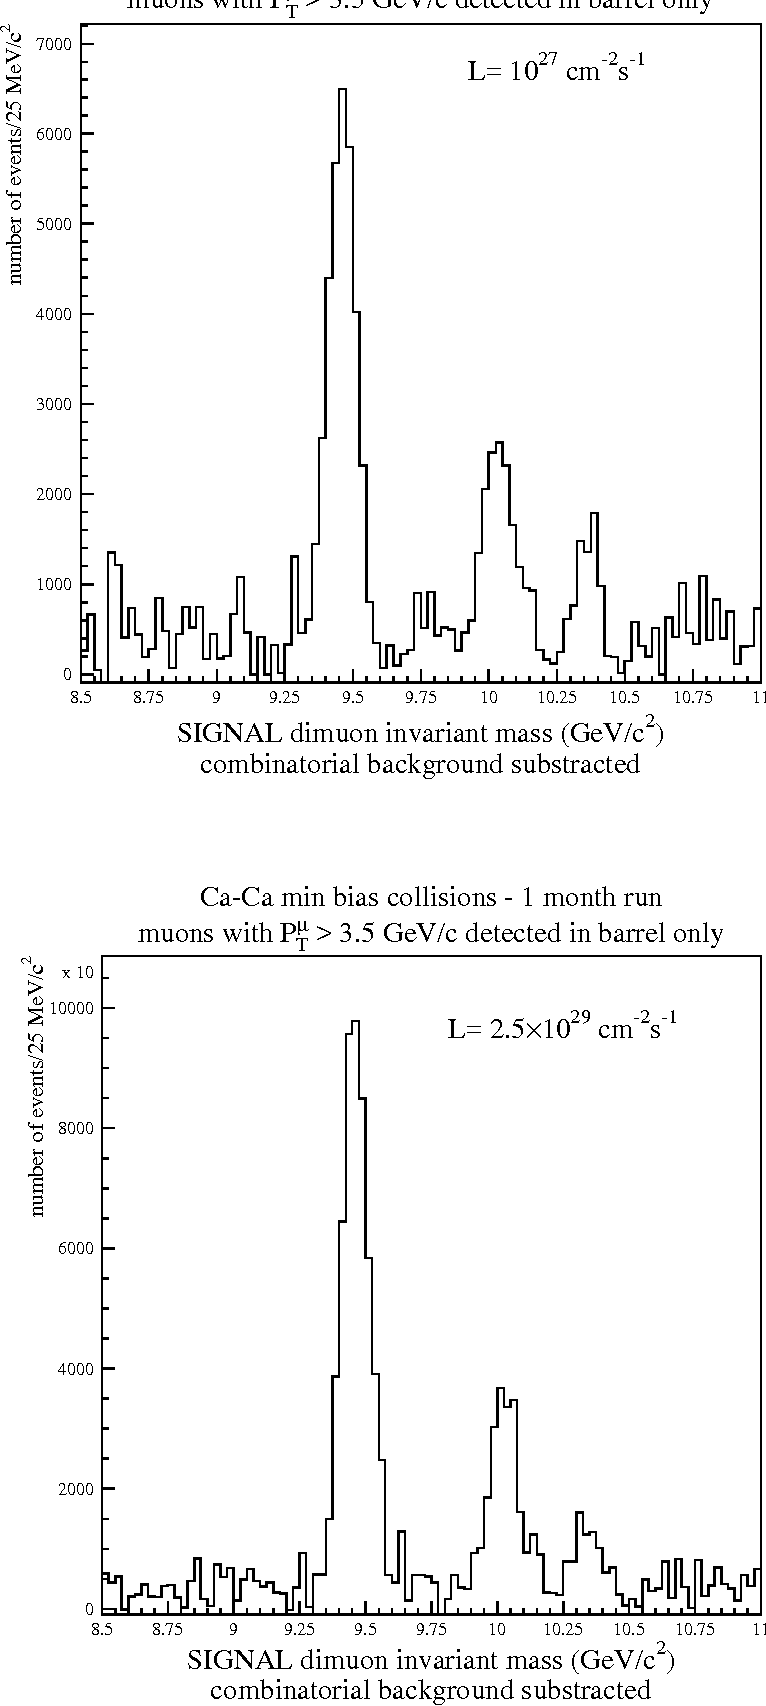 Figure 12: Dimuon mass spectra after uncorrelated background subtraction for Pb-Pb collisions (up) and Ca-Ca collisions (down).